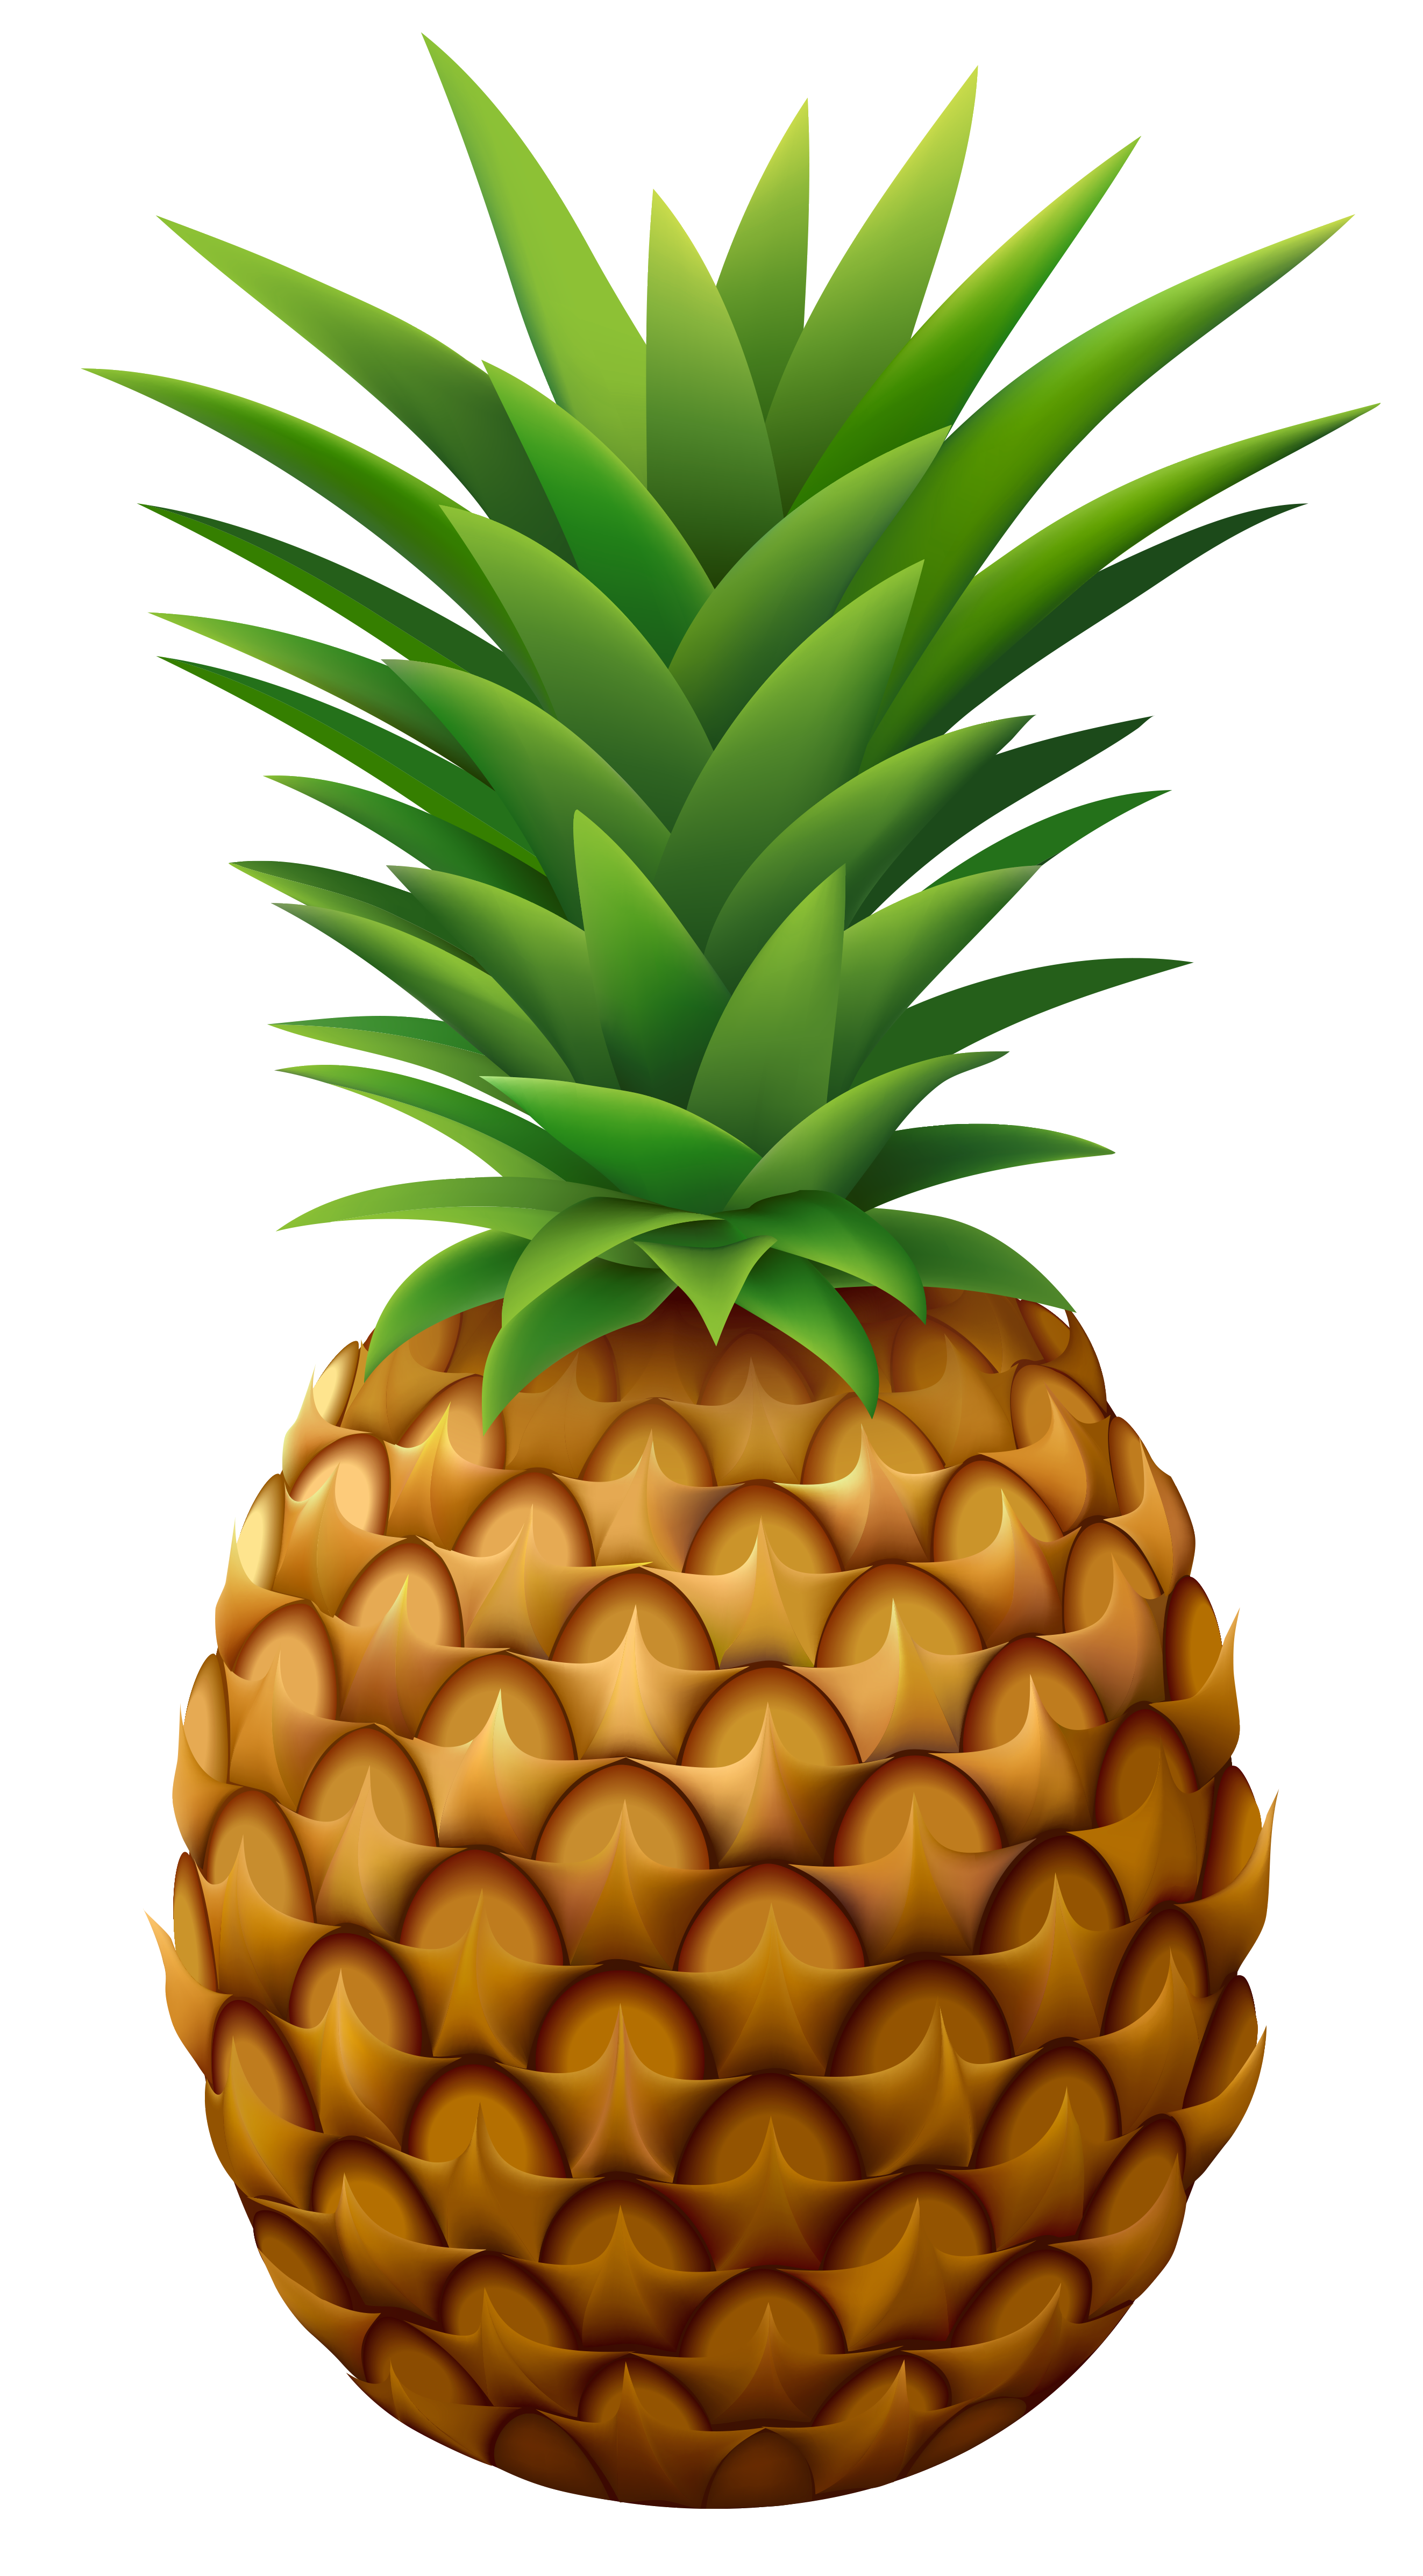 Pineapple PNG Vector Clipart Image Gallery Yopriceville HighQuality Images and